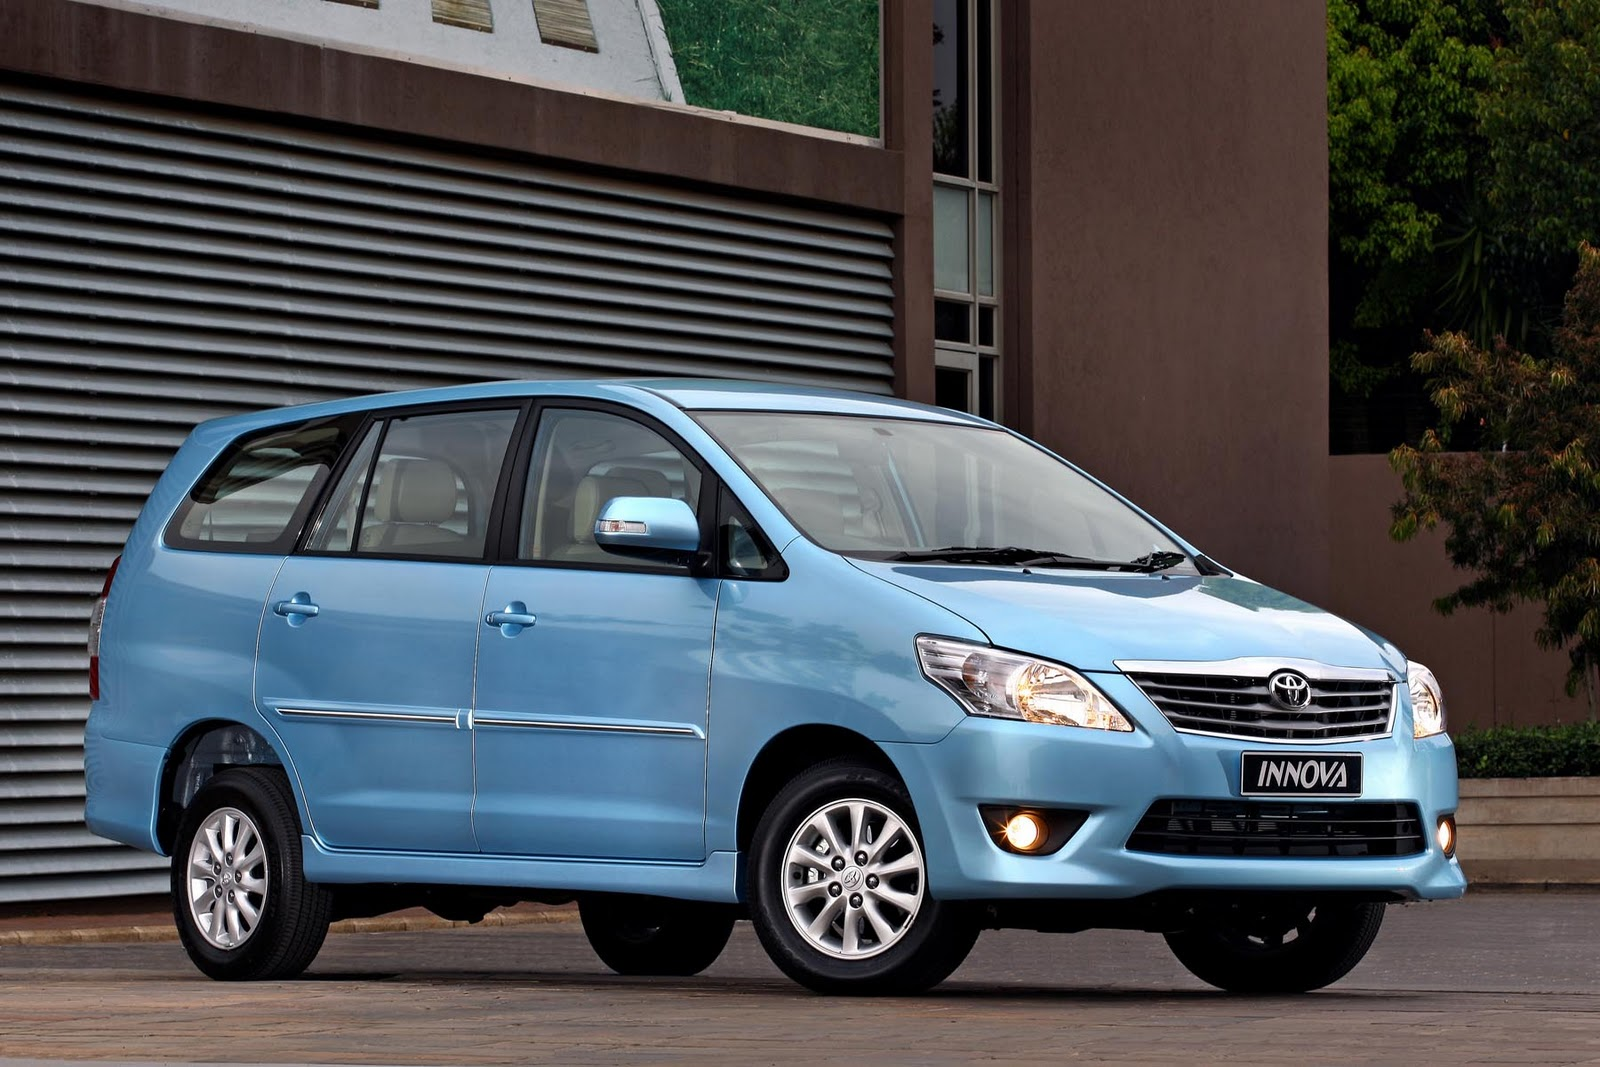 Innova New Venturer All Toyota Yaris Trd Sportivo 2018 In4ride For The People